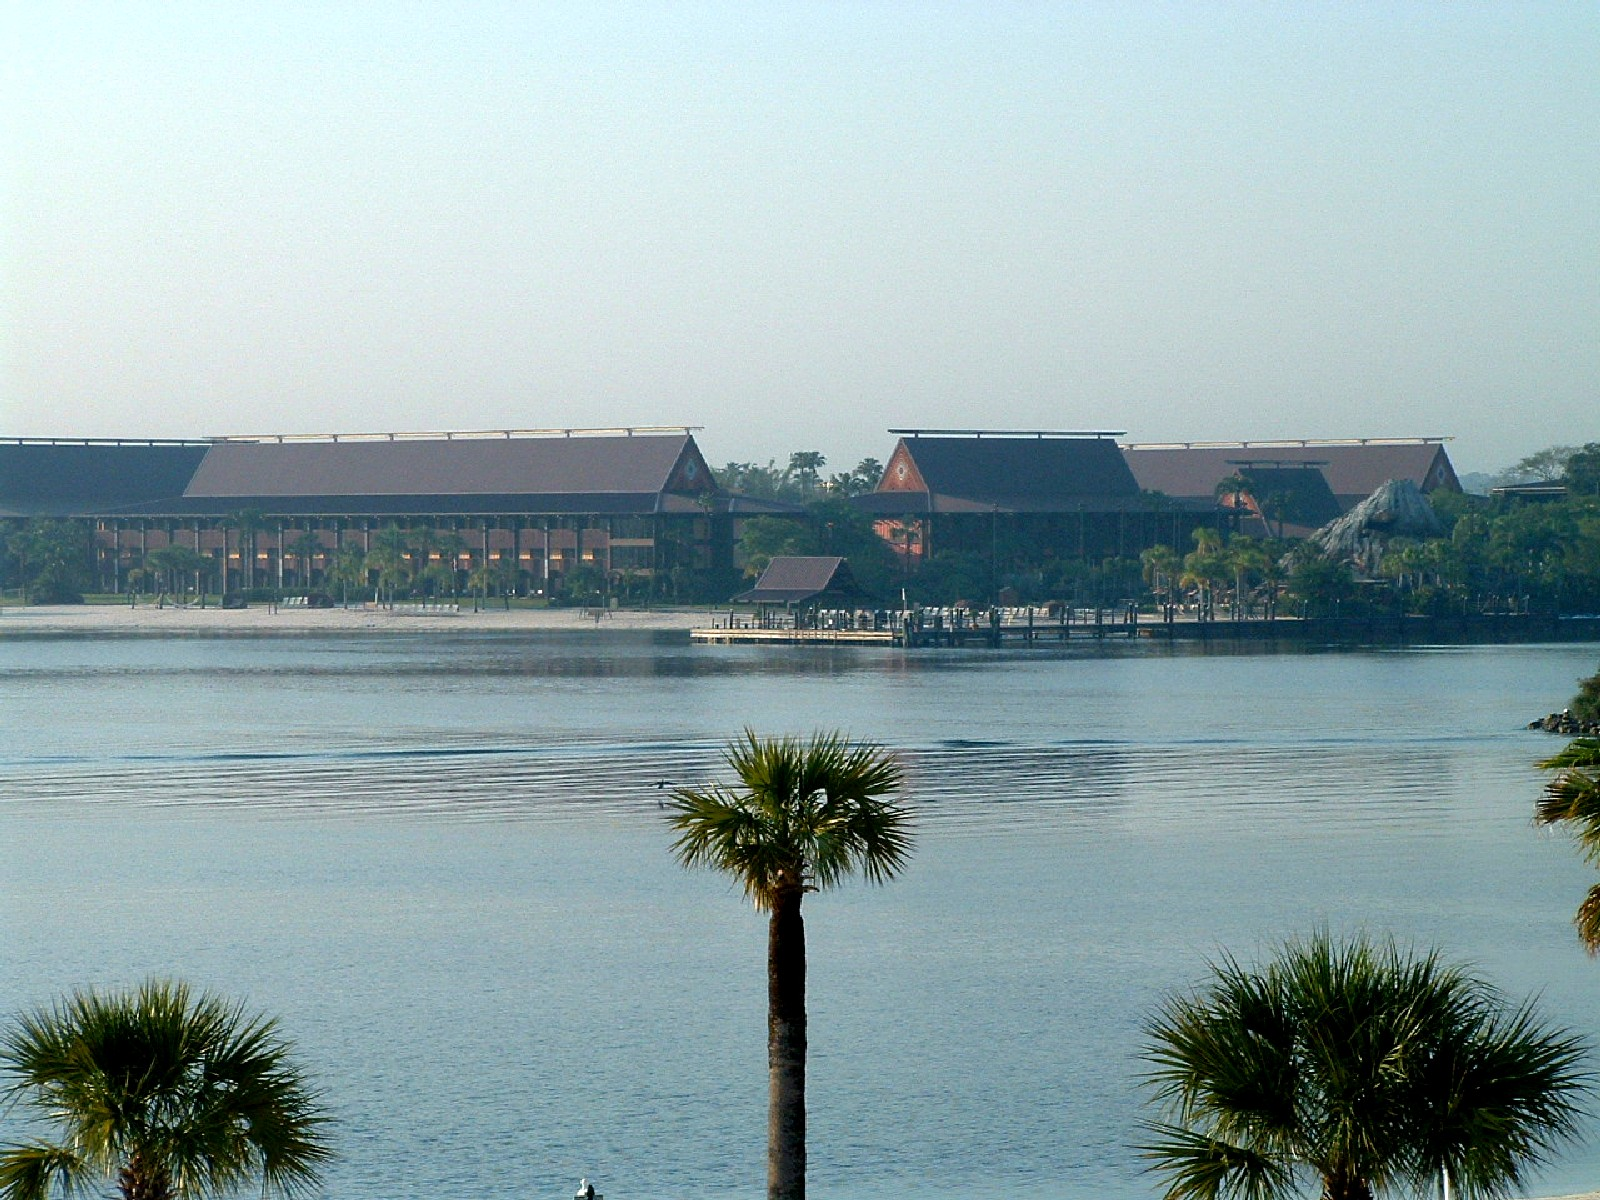 Grand Floridian - View of the Polynesian